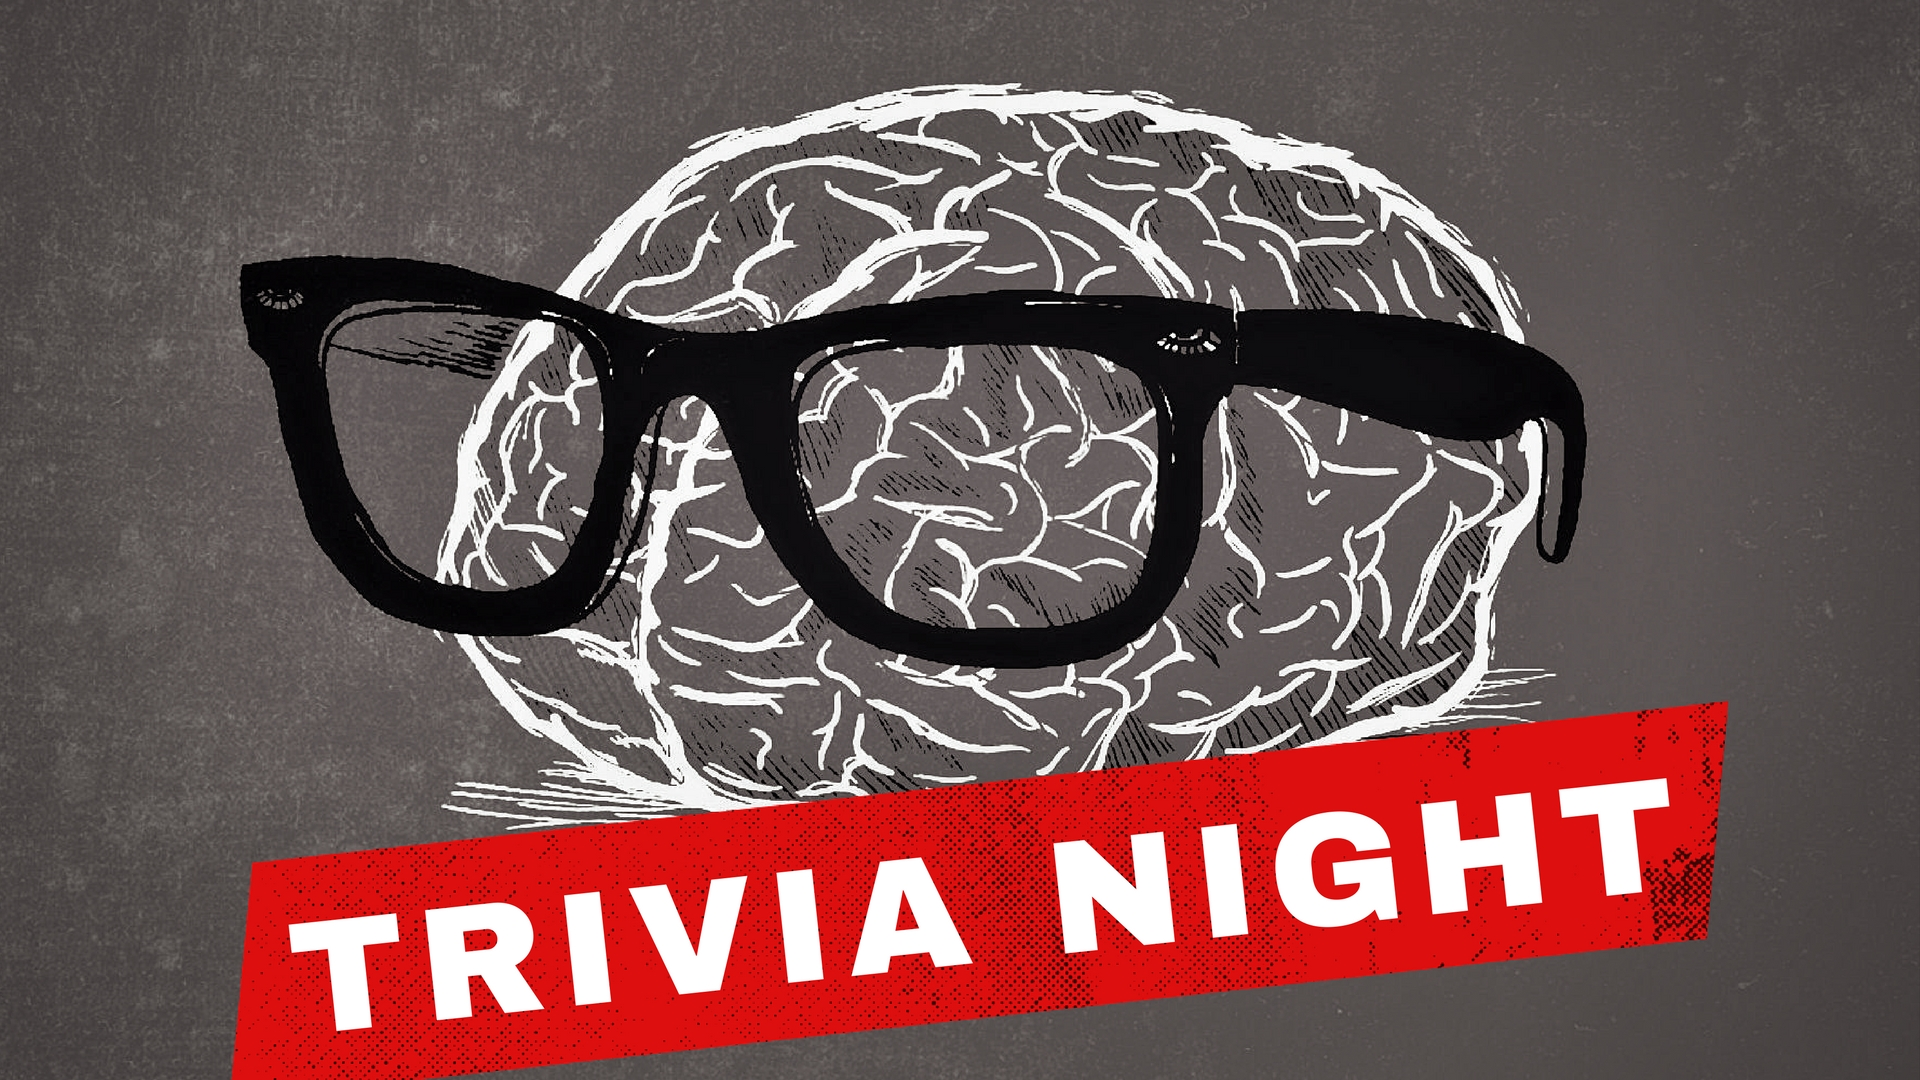 Copy-of-TRIVIA-NIGHT-2.jpg